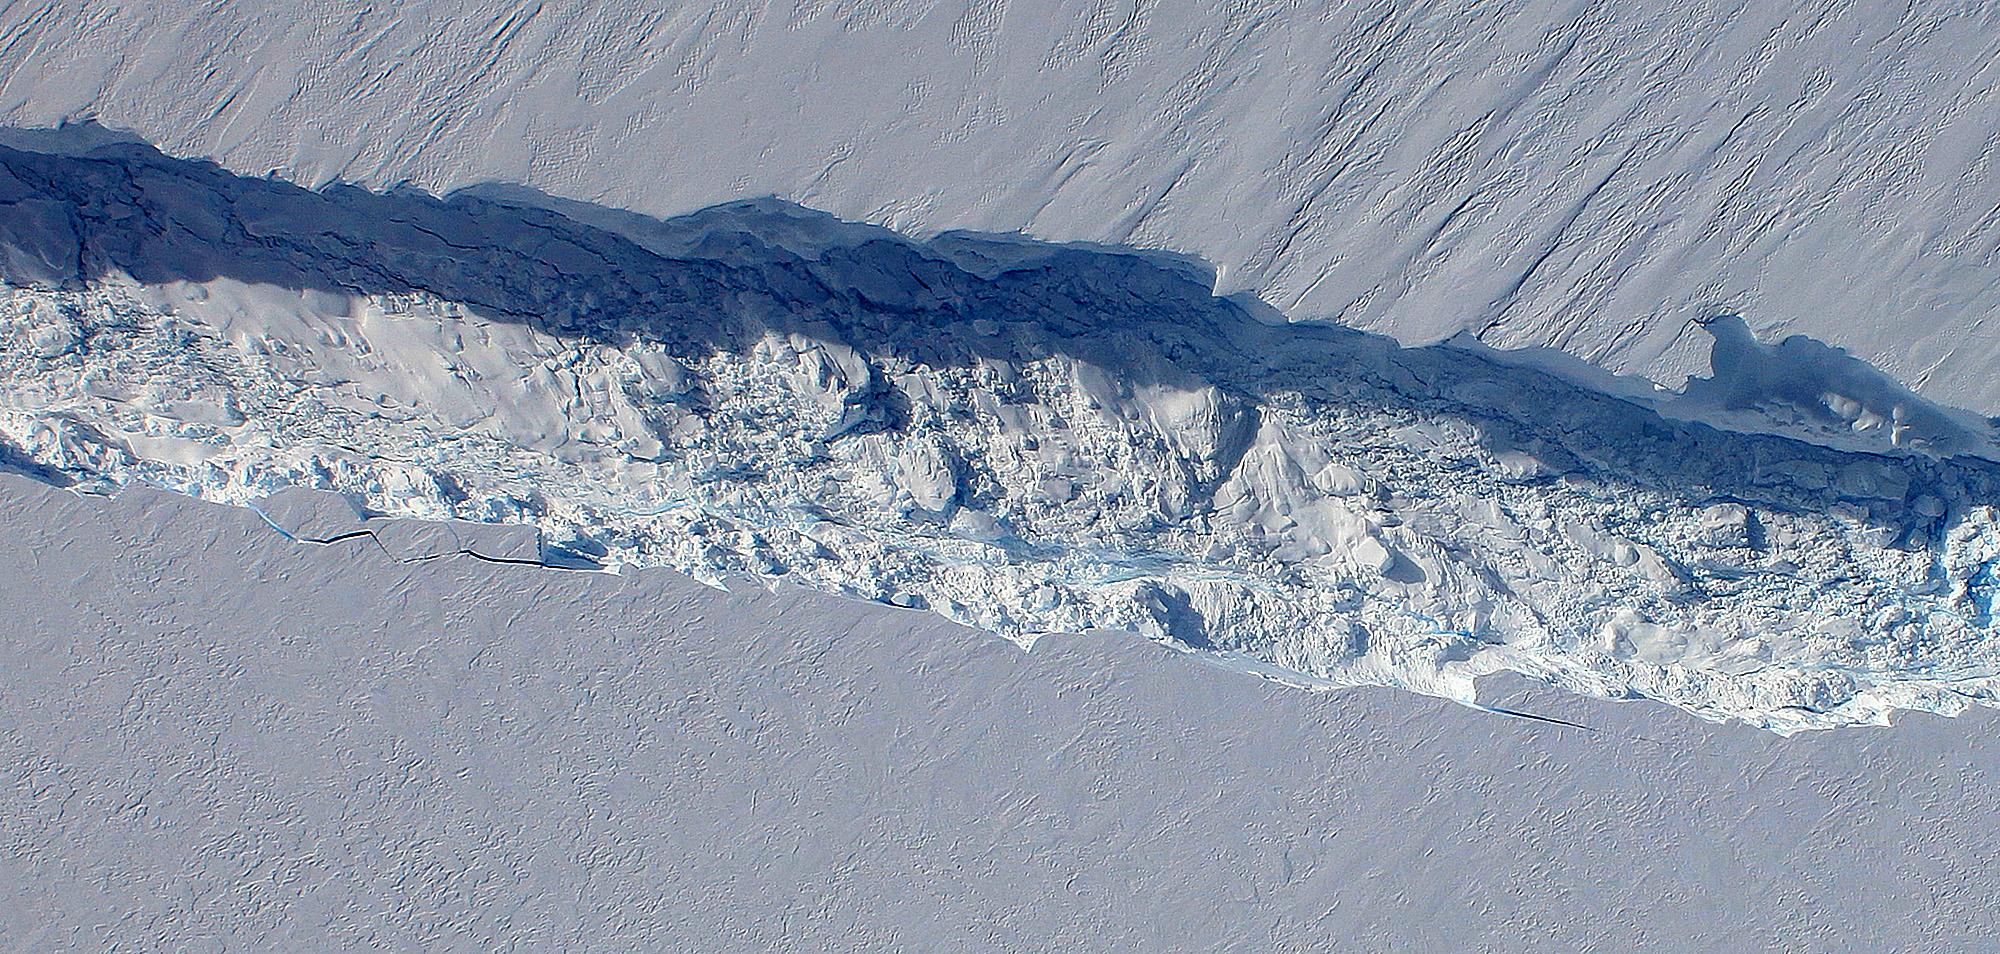 View of the Pine Island Glacier rift